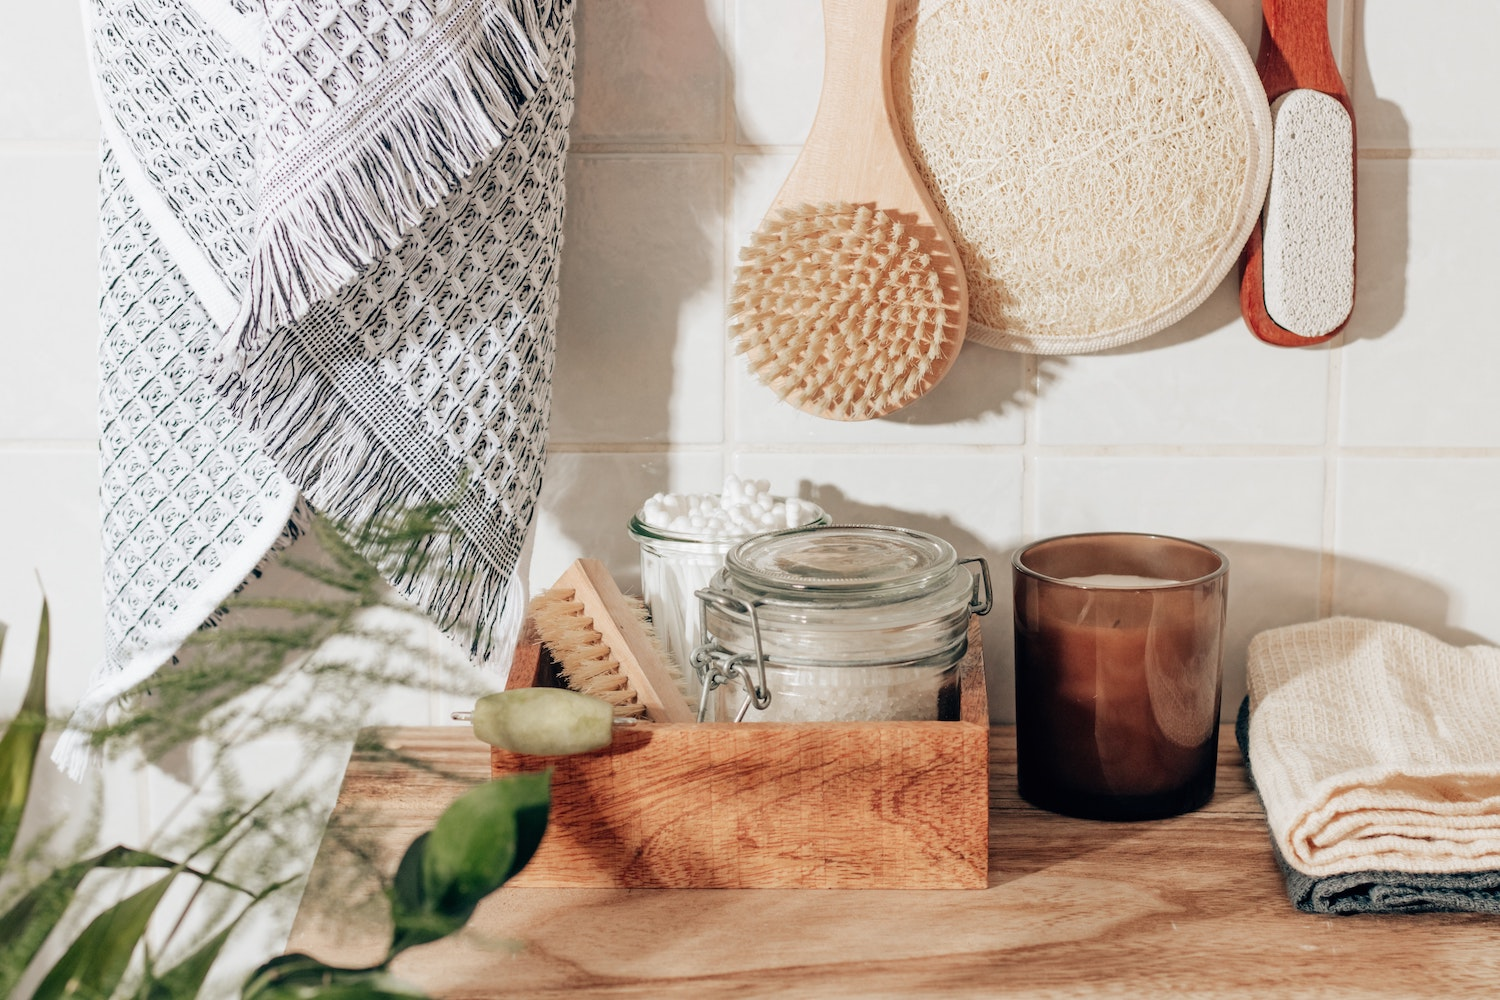 5-ways-to-reduce-pastic-at-home